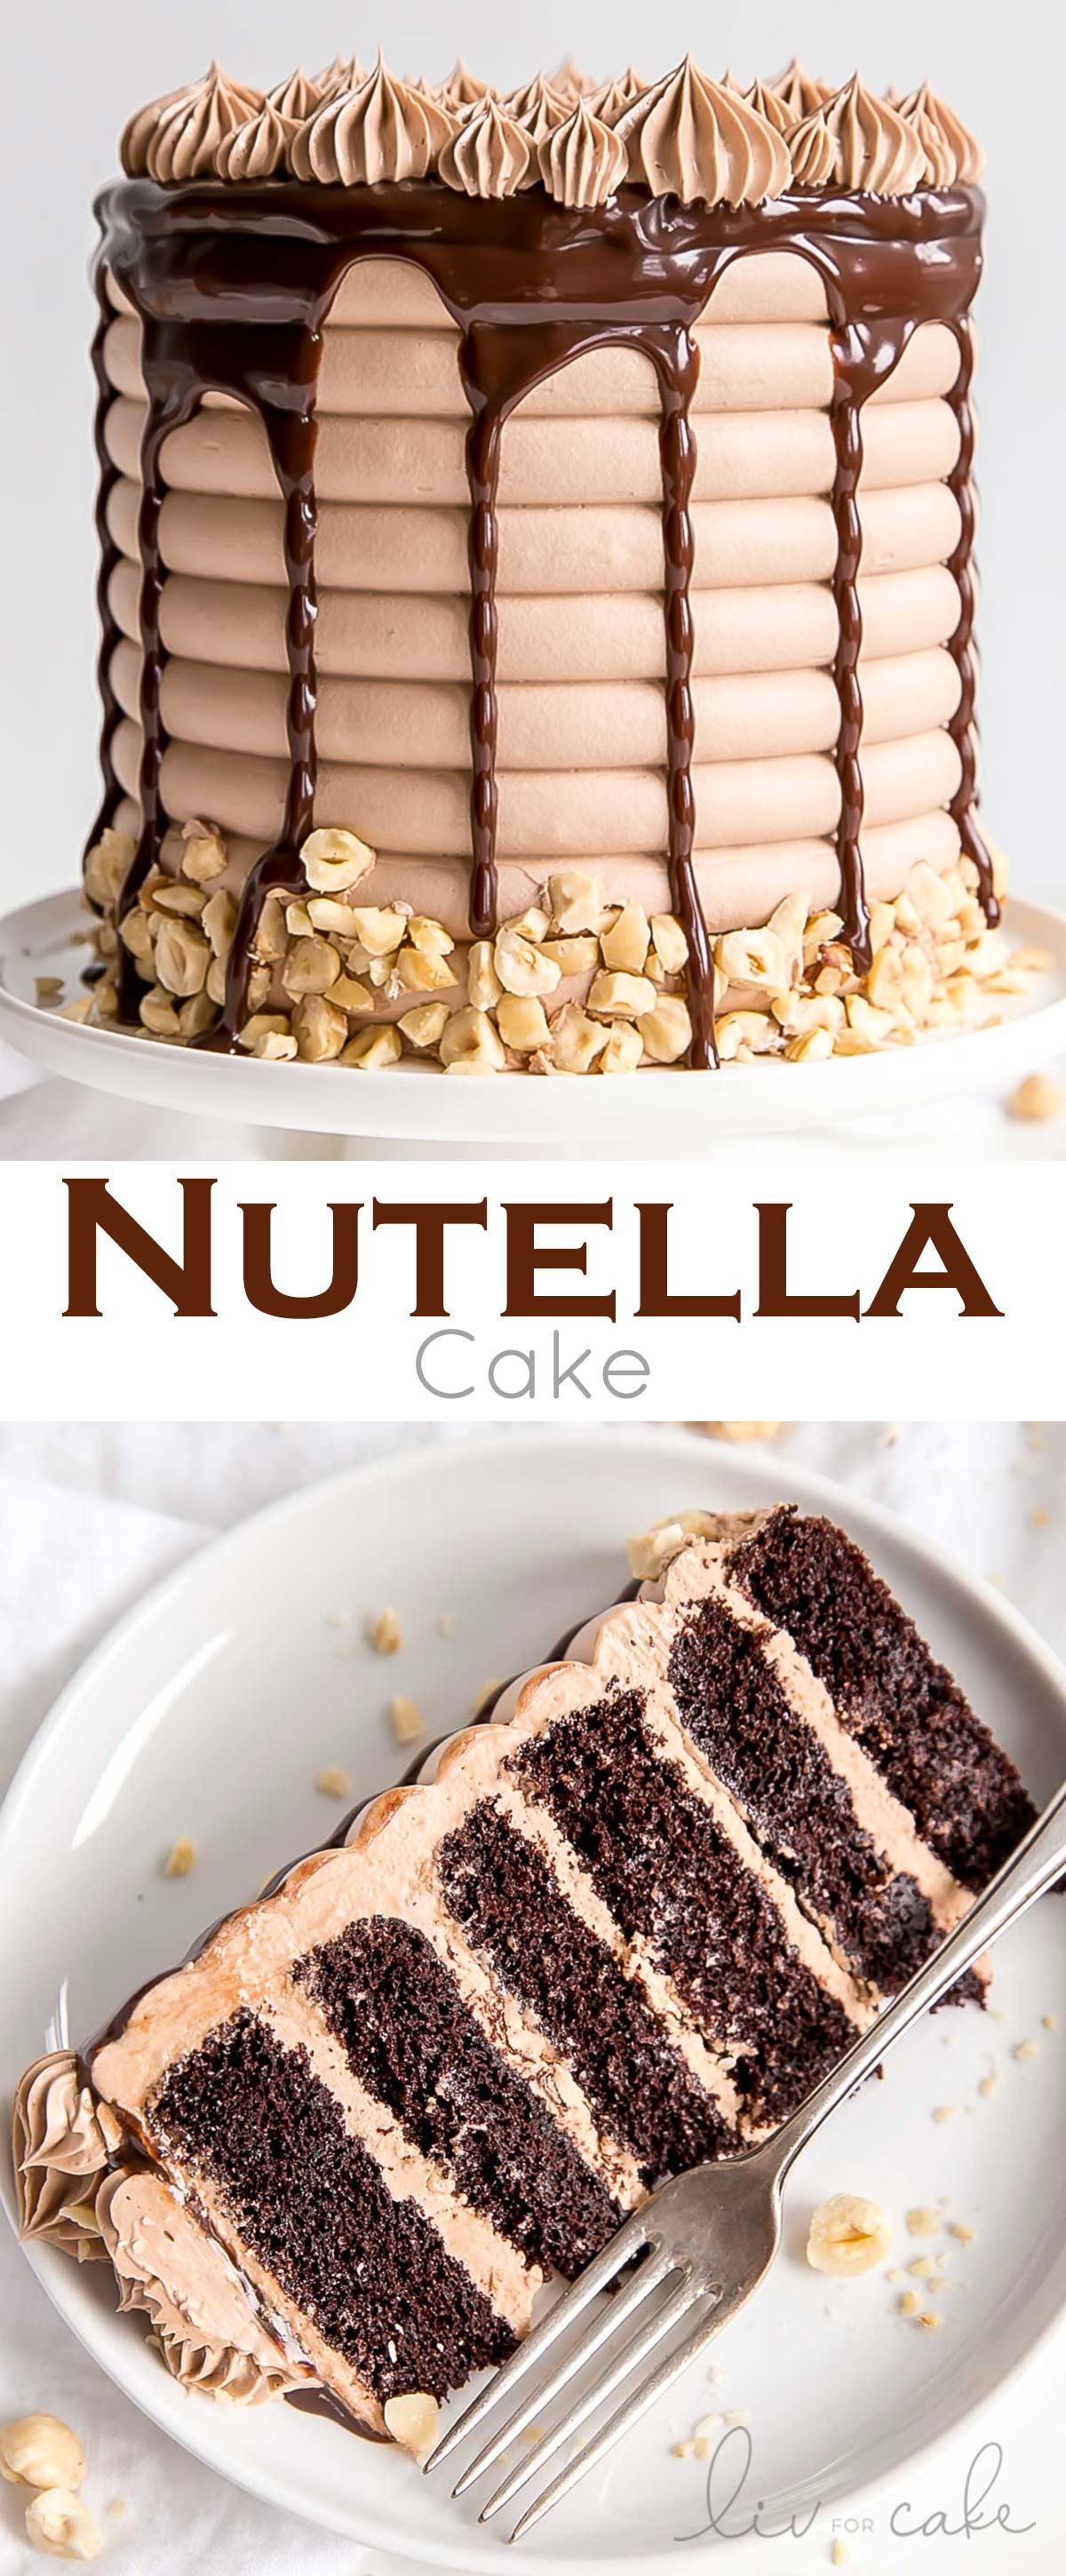 This Nutella Cake is six layers of pure decadence! Delicious chocolate cake layers, Nutella buttercream, and Nutella ganache.| livforcake.com